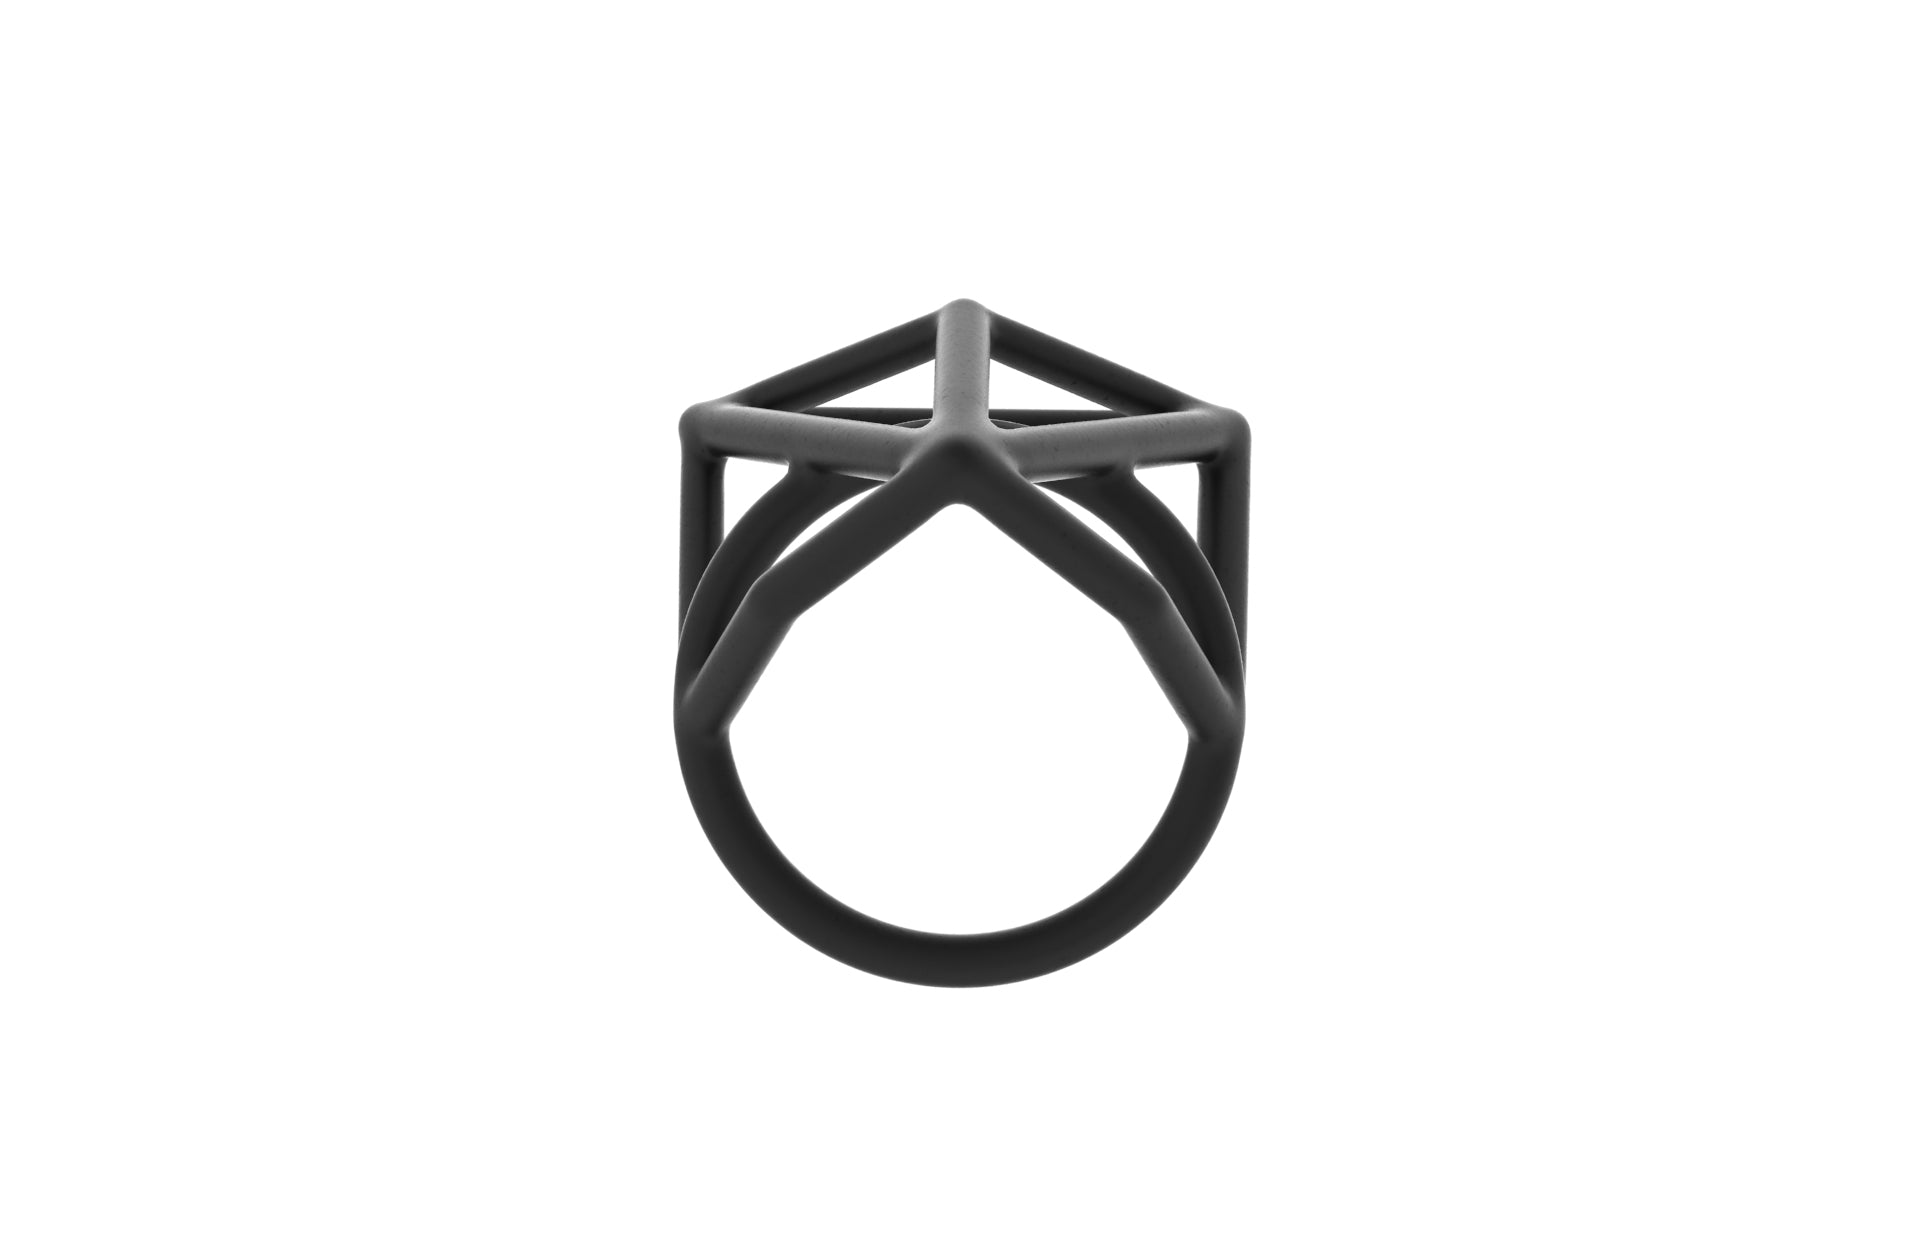 The Kite Ring